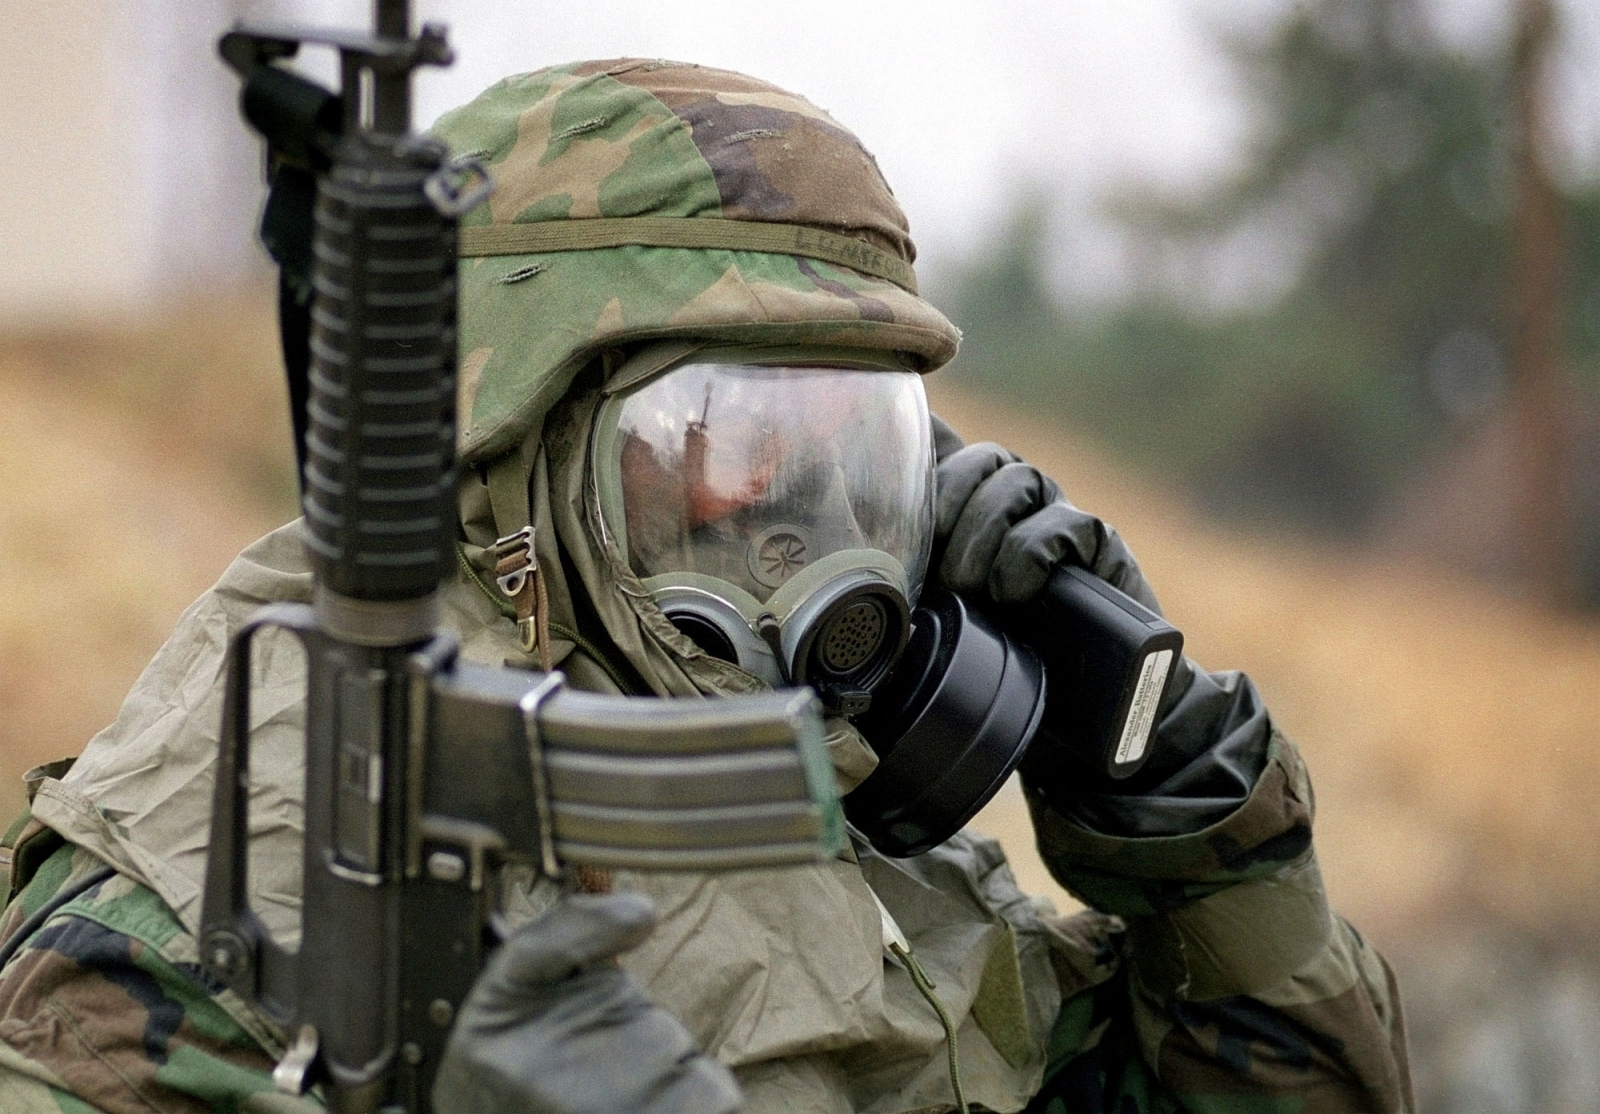 an examination of chemical warfare and terrorism Last ss2 joint examination question on  chemielaborjungwerker chemielaborant chemical warfare and chemical terrorism chemistry 103 lab manual answers 11ed chemical.